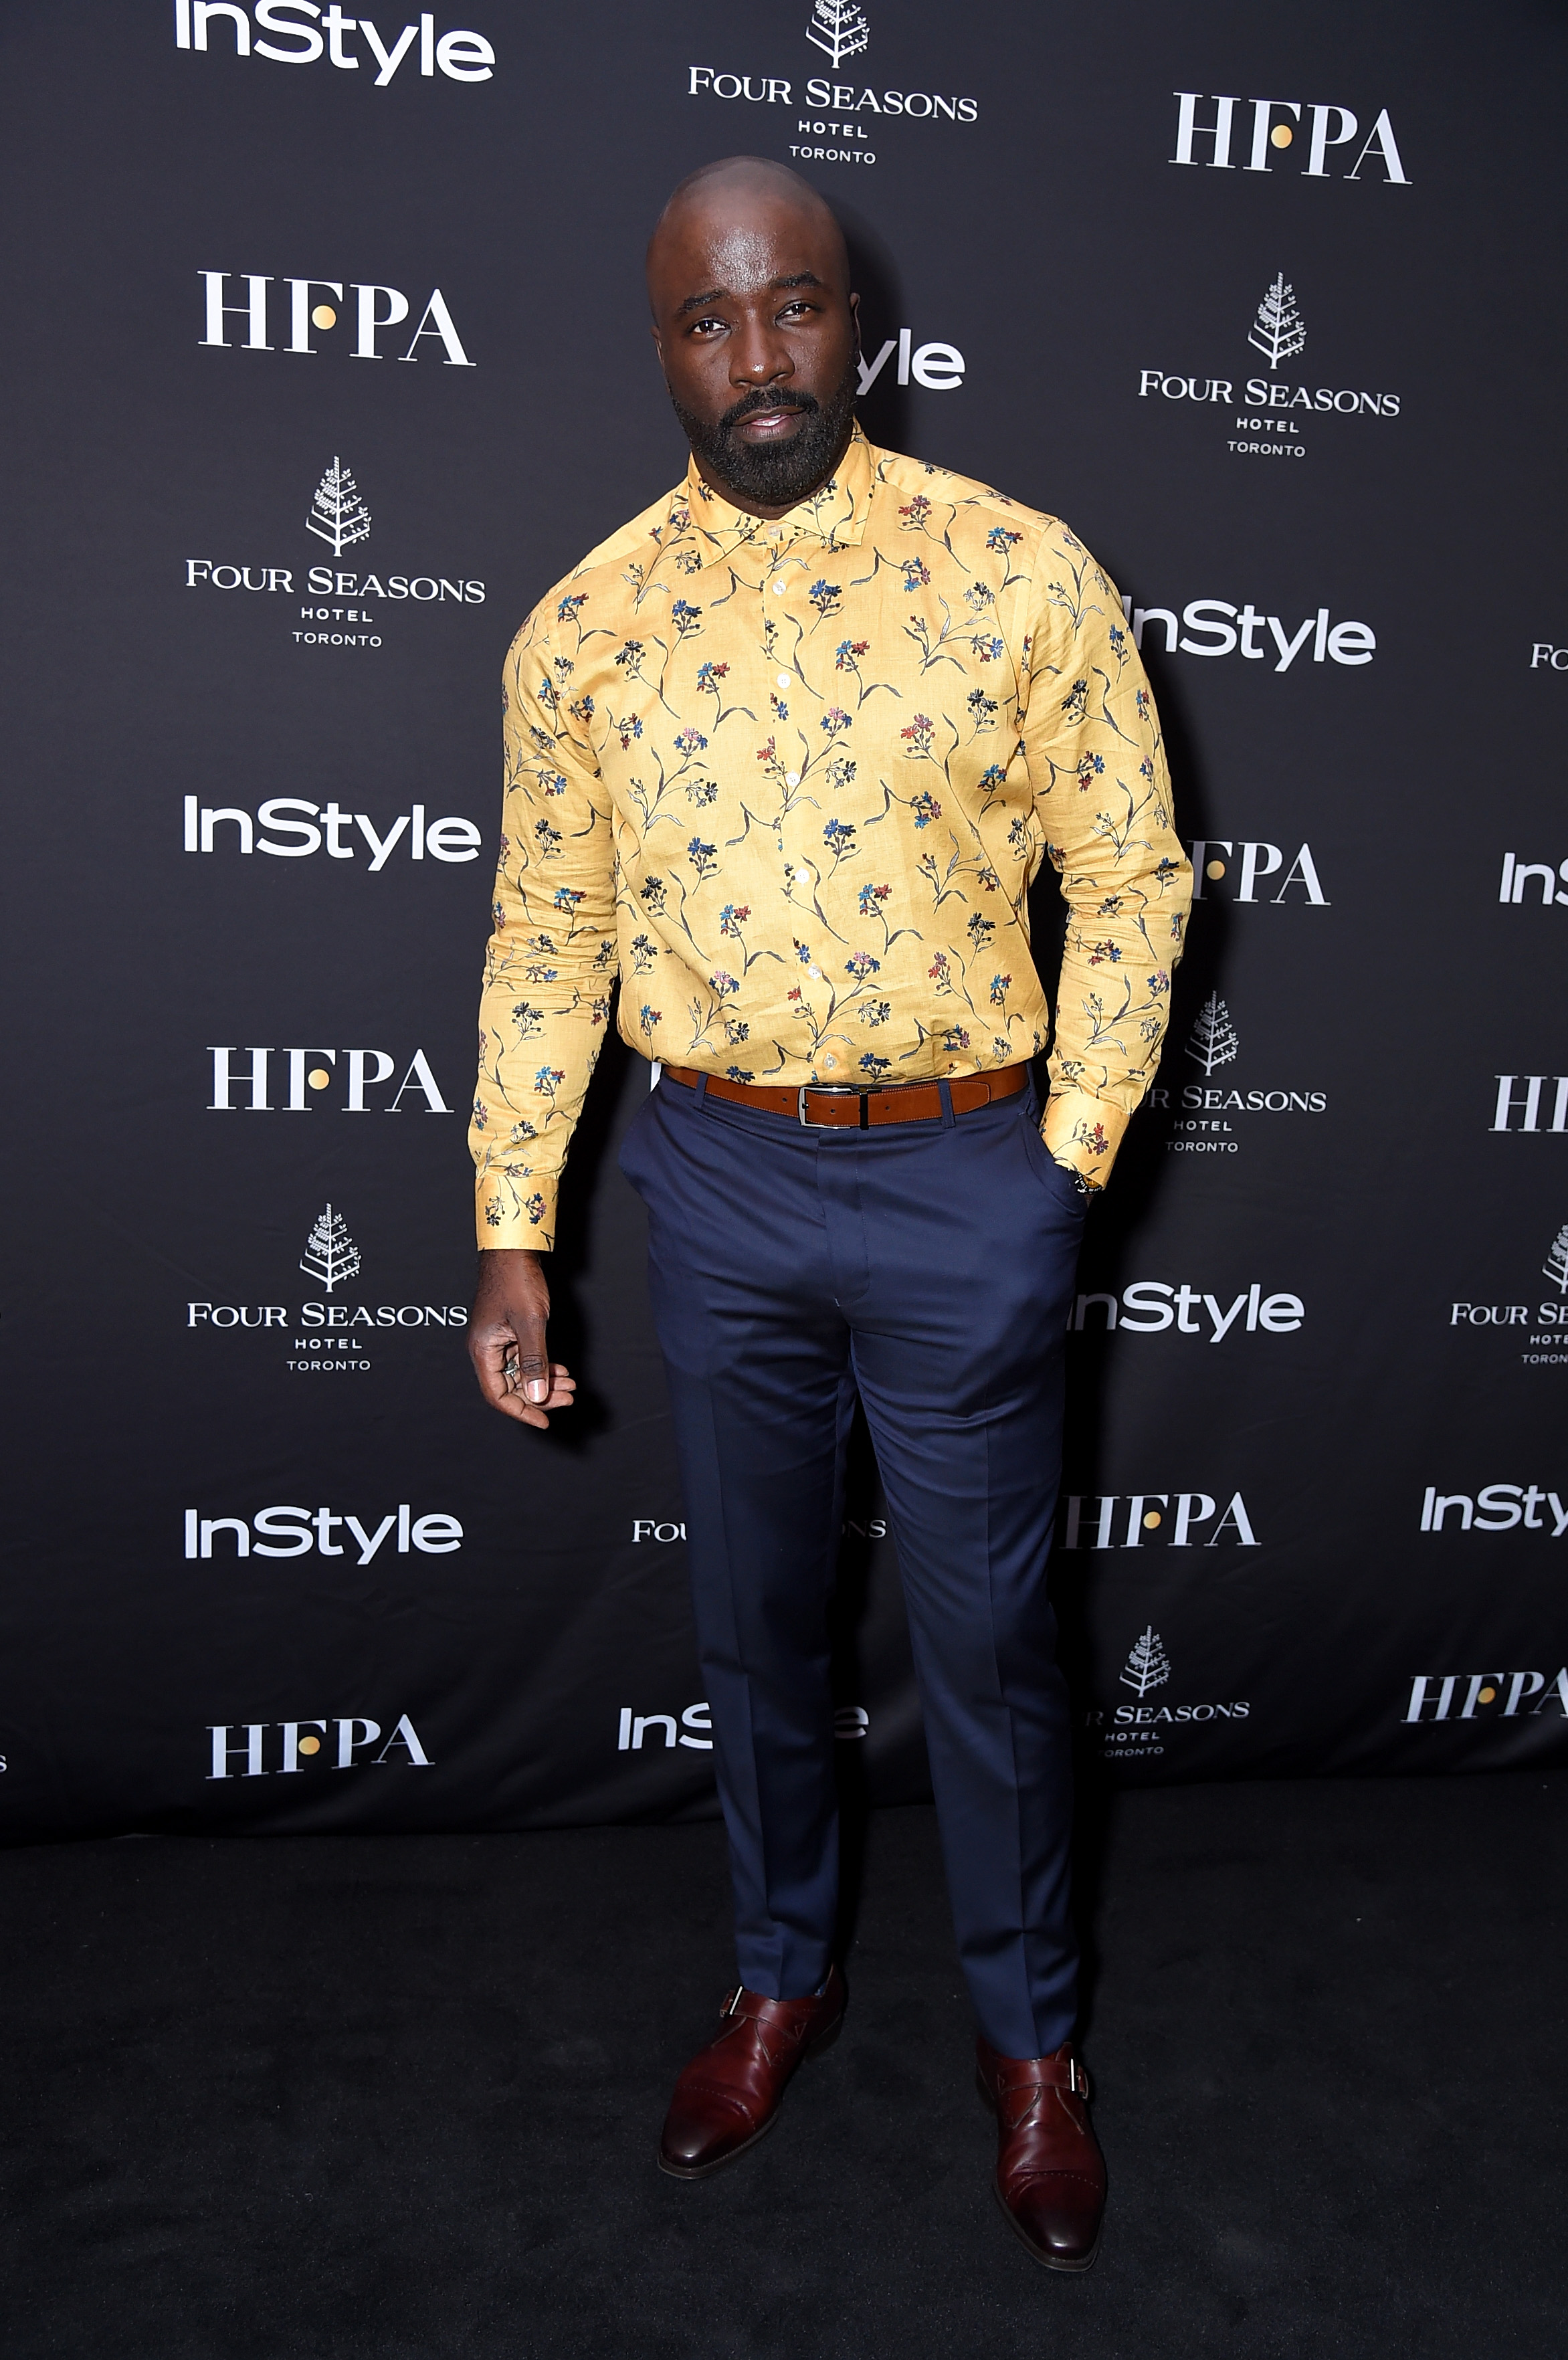 Mike Colter at the 2018 Toronto International Film Festival